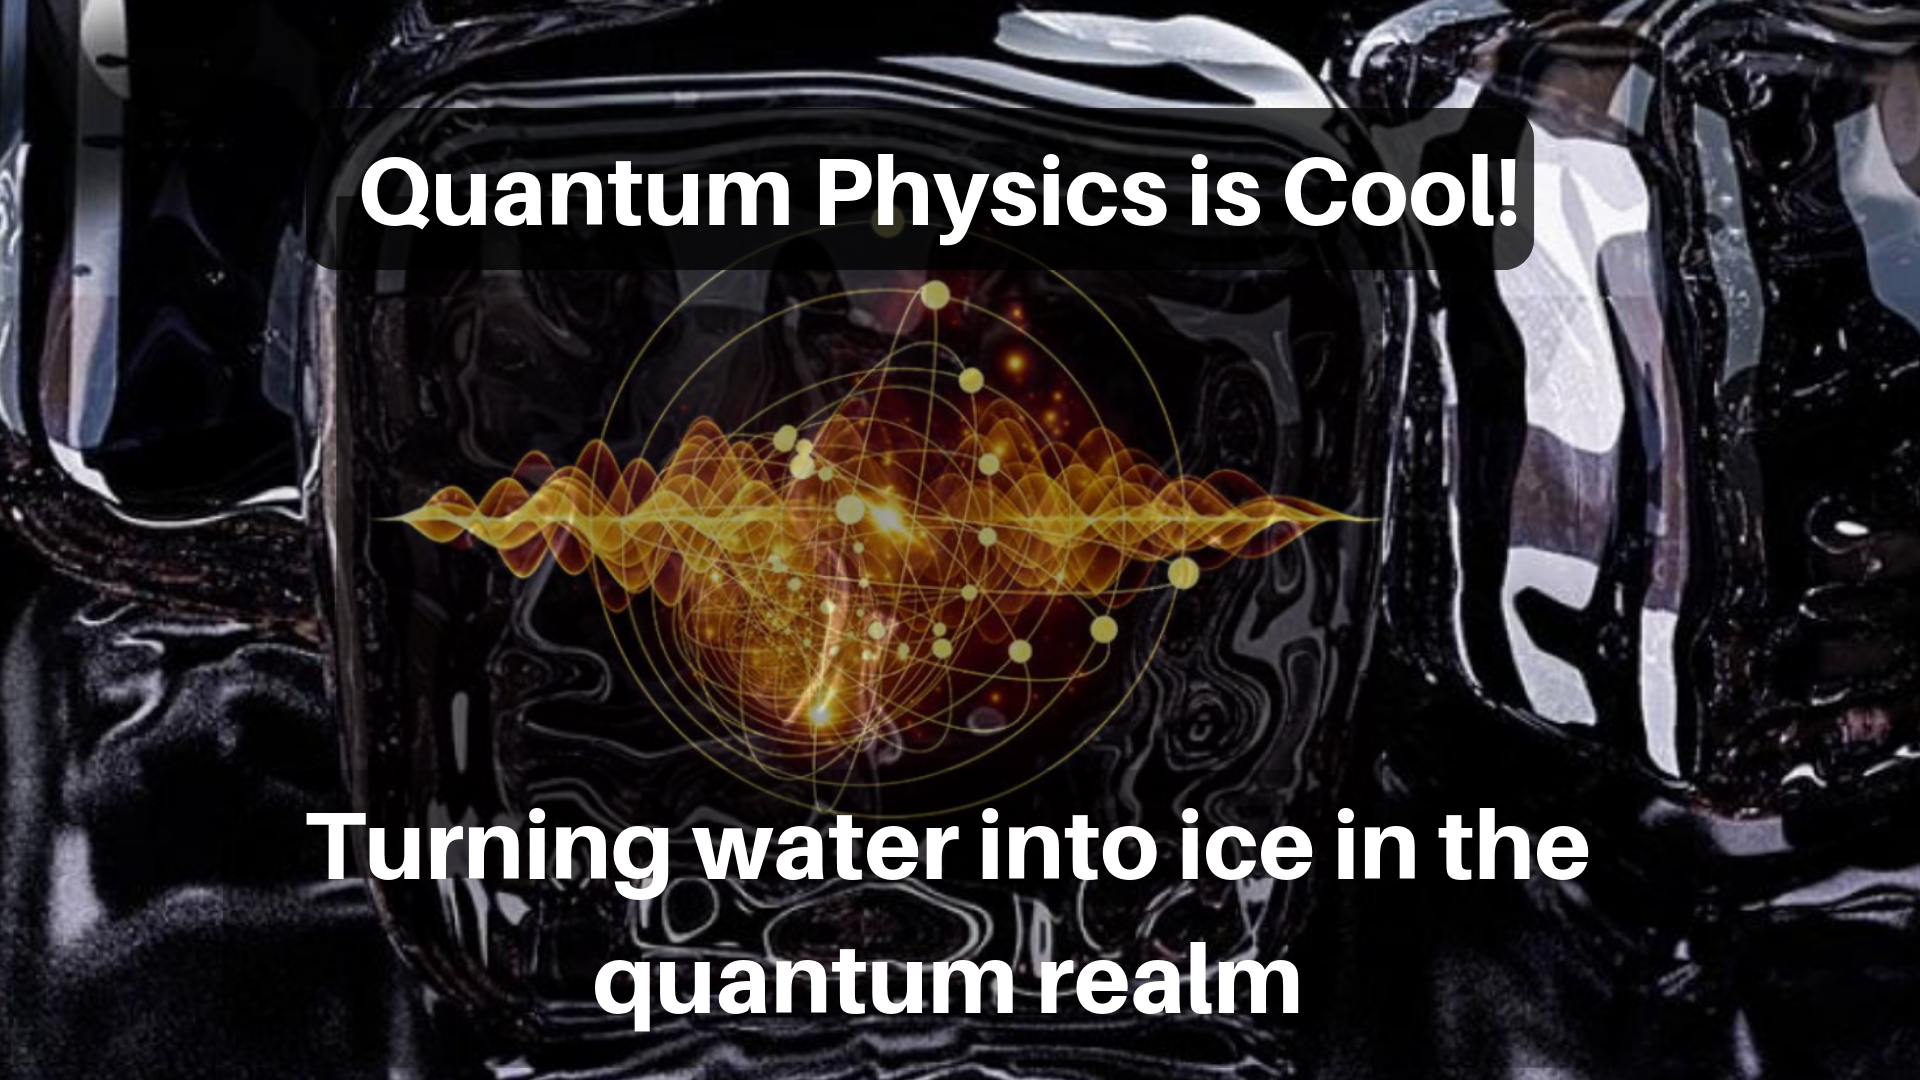 Quantum Physics is Cool! Turning water into ice in the quantum realm